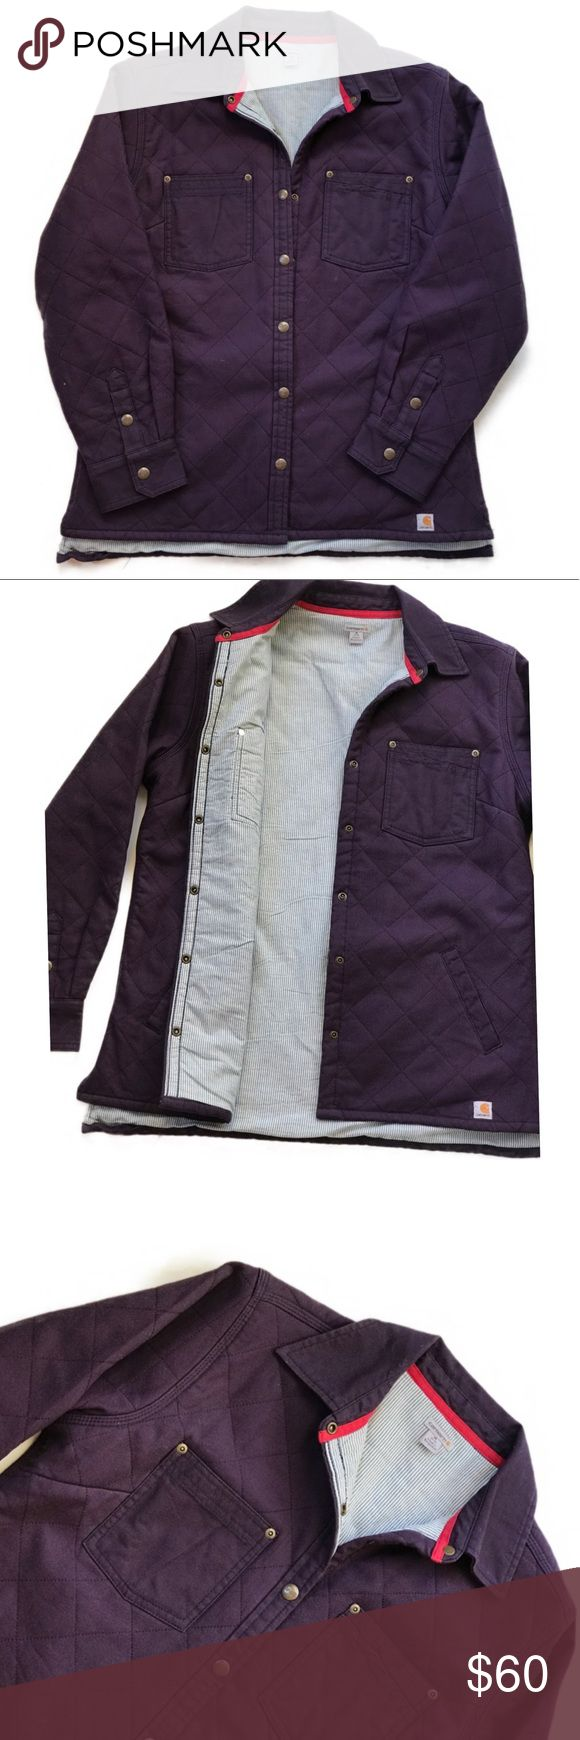 NEW Women's Carhartt Quilted Plum Work Jacket New without tags excellent condition !  Dark plum Quilted jacket with stripped interior lining. Carhartt Jackets & Coats